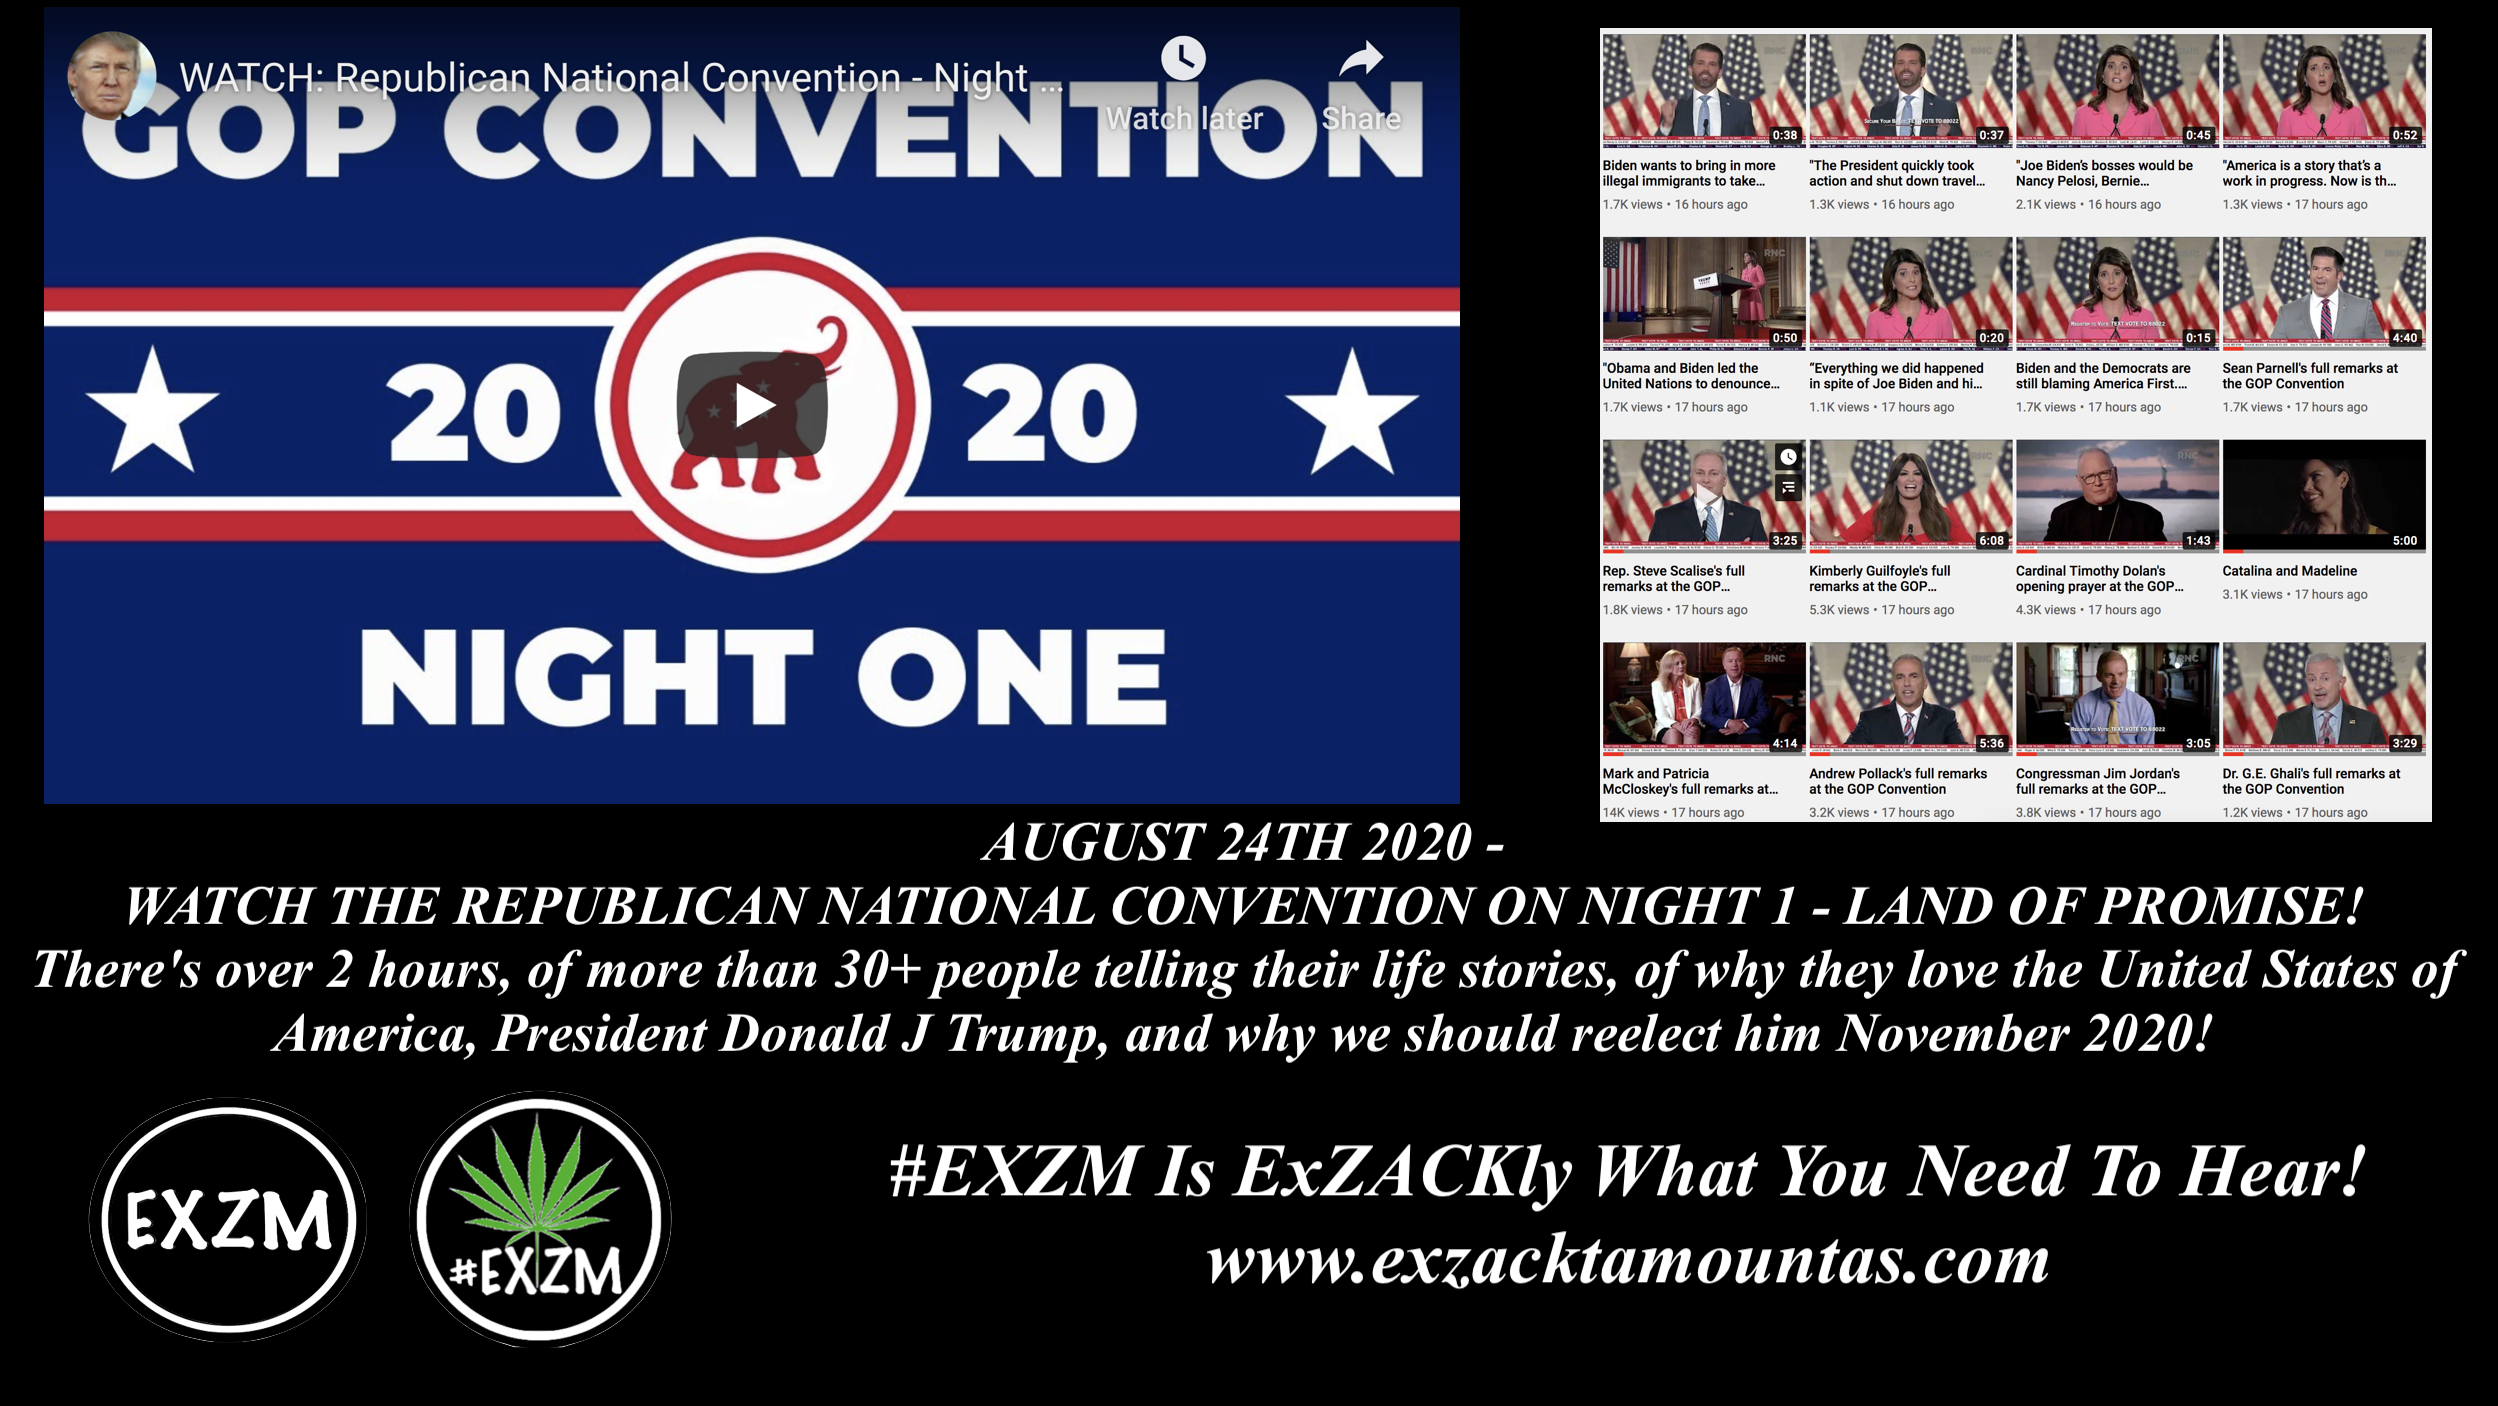 EXZM President Donald Trump RNC Republican National Convention August 24th 2020